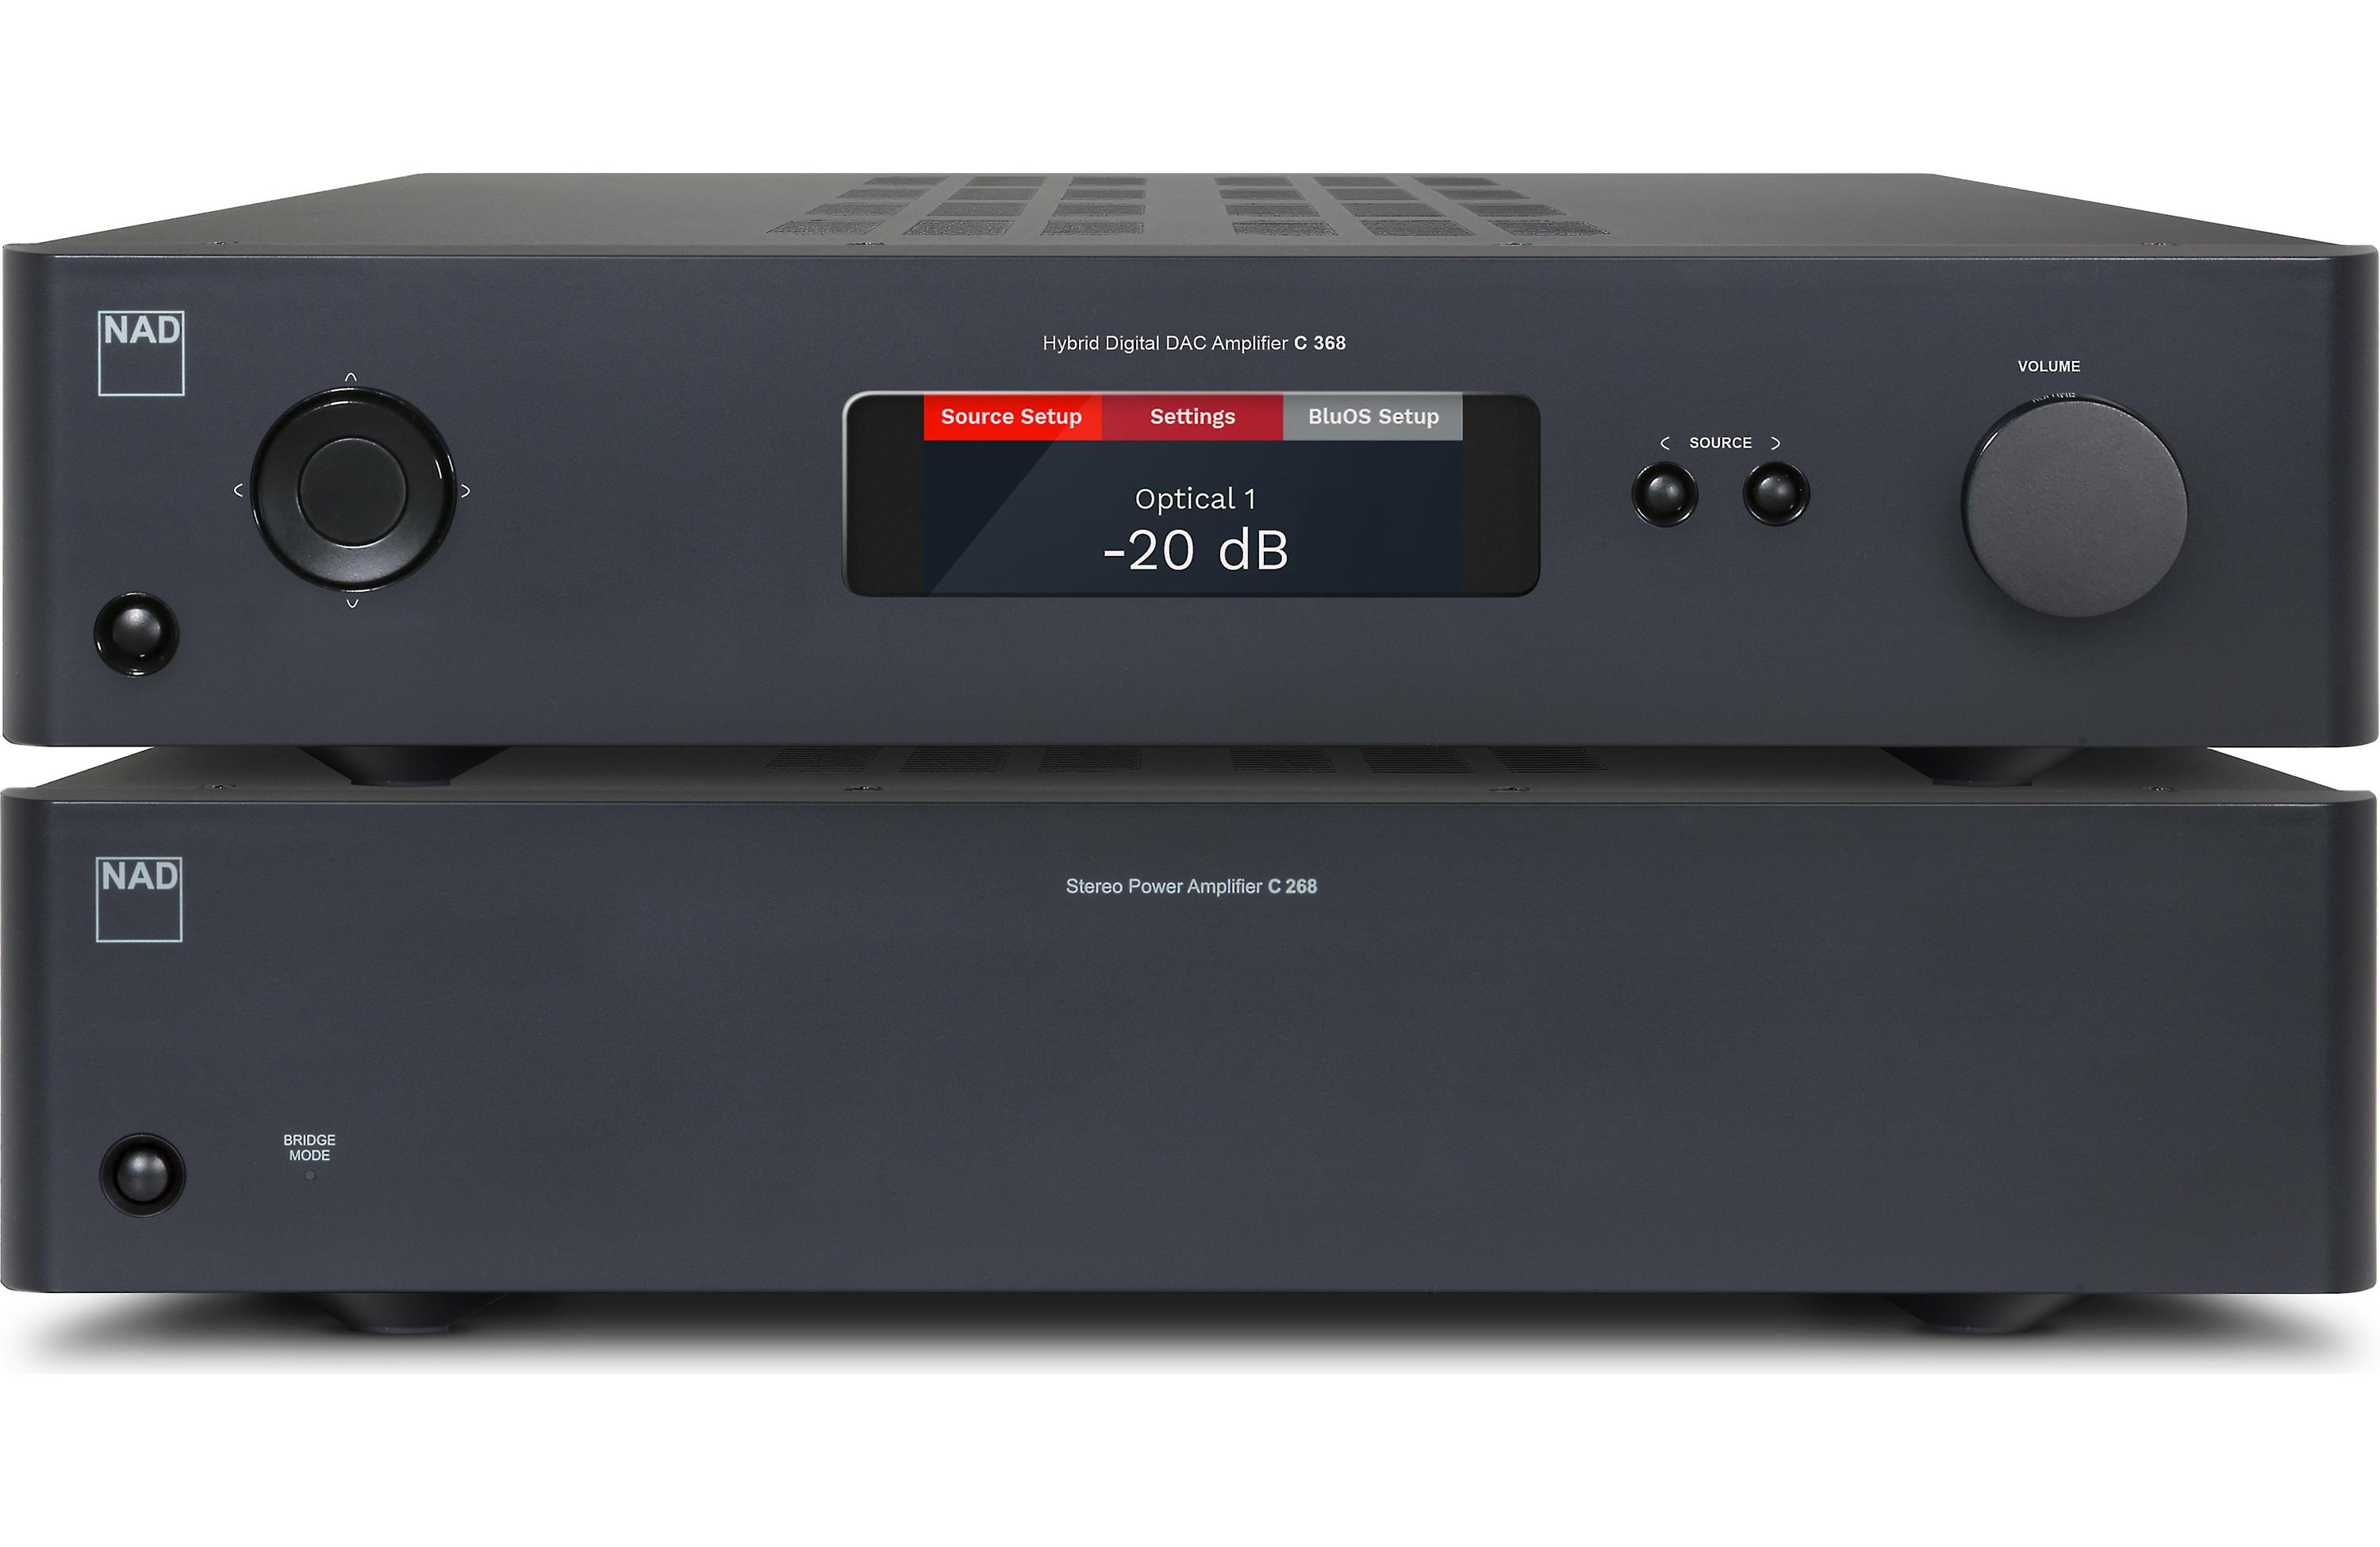 NAD C 268 Stereo Power Amplifier - Dedicated Audio